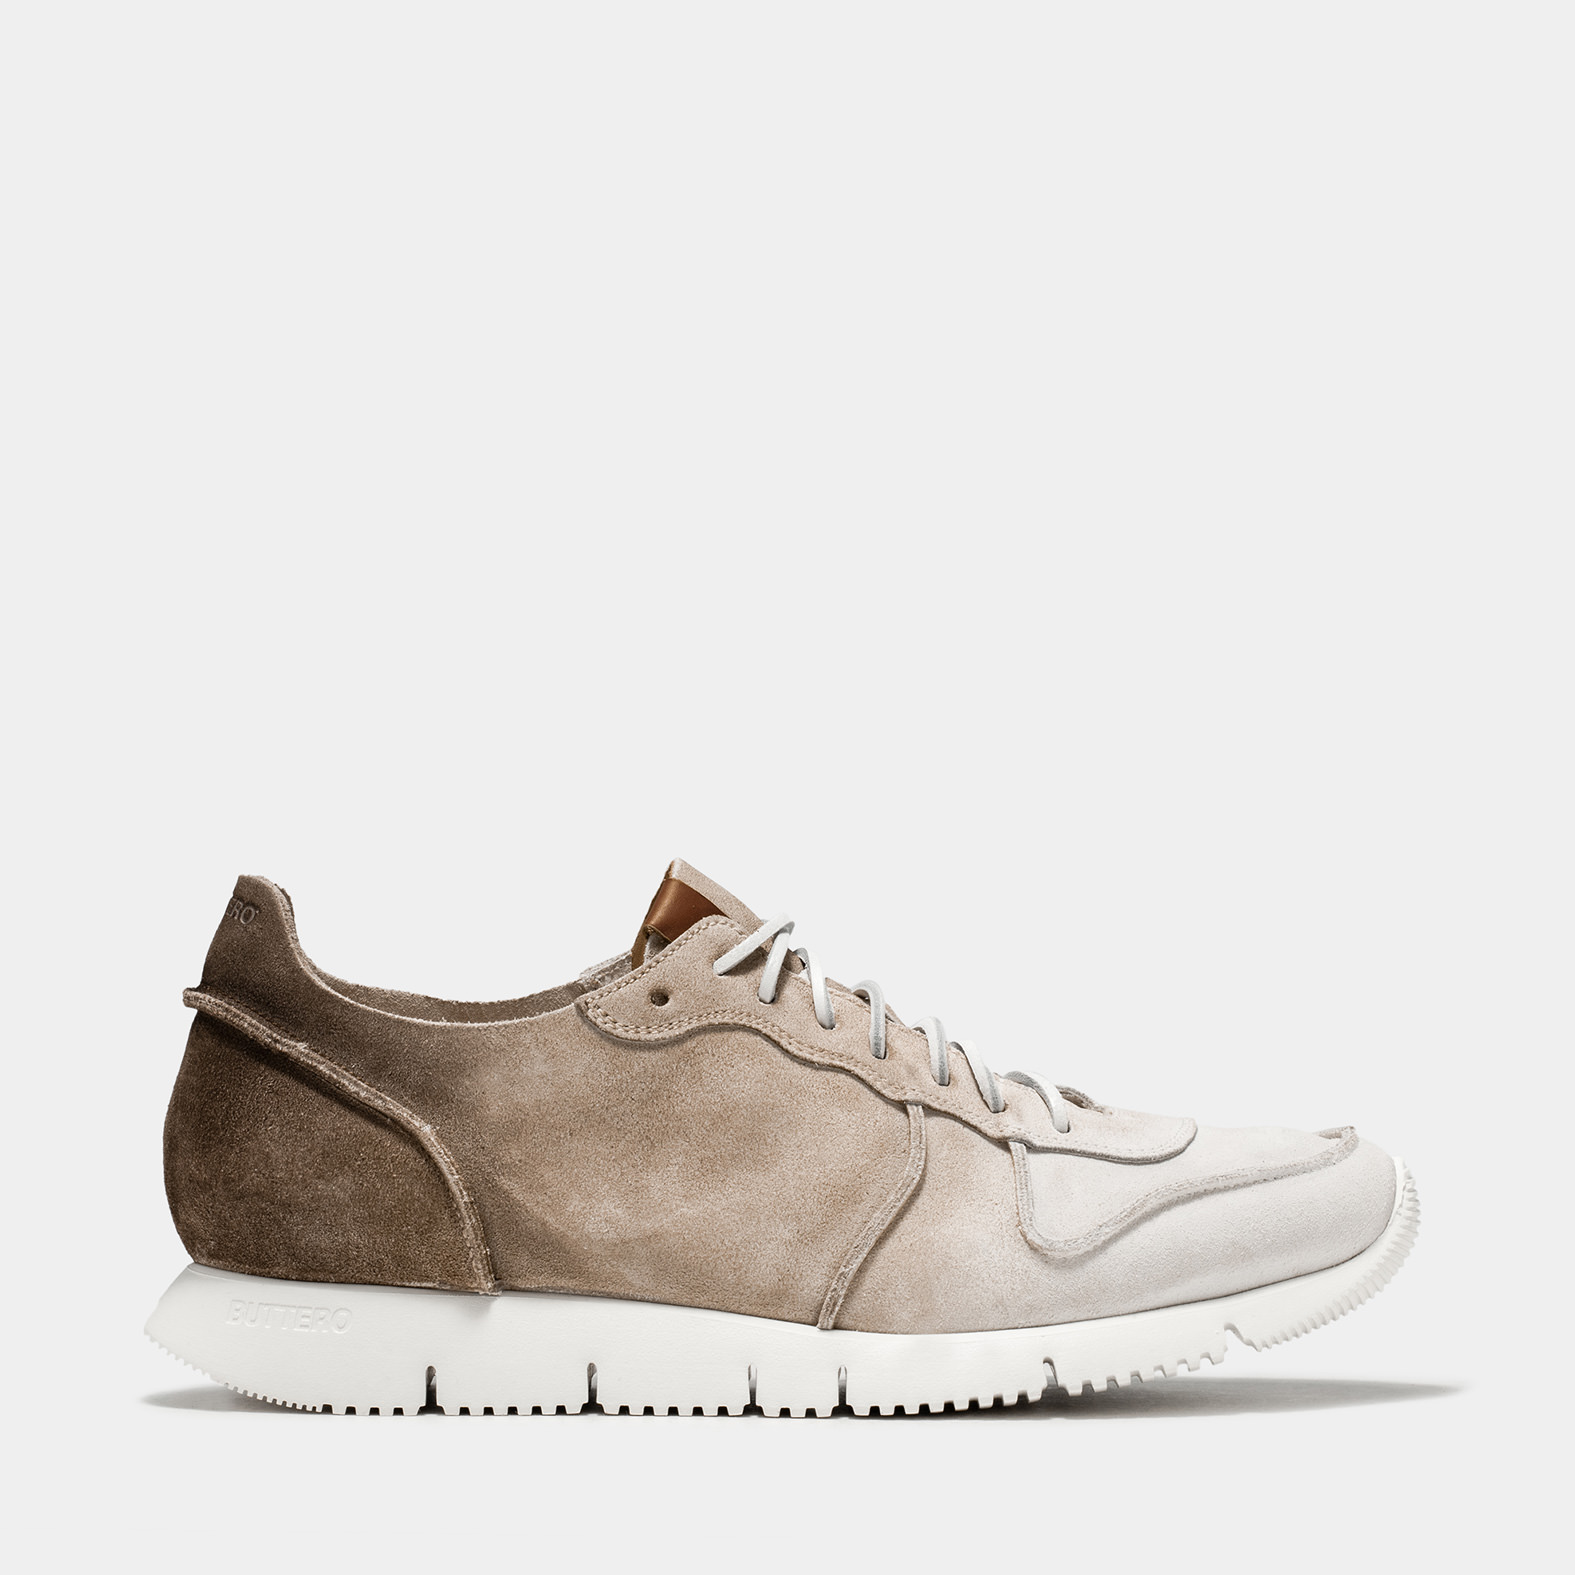 BUTTERO: WHITE/CAPPUCCINO/TERRA DEGRADE' SUEDE CARRERA SNEAKERS